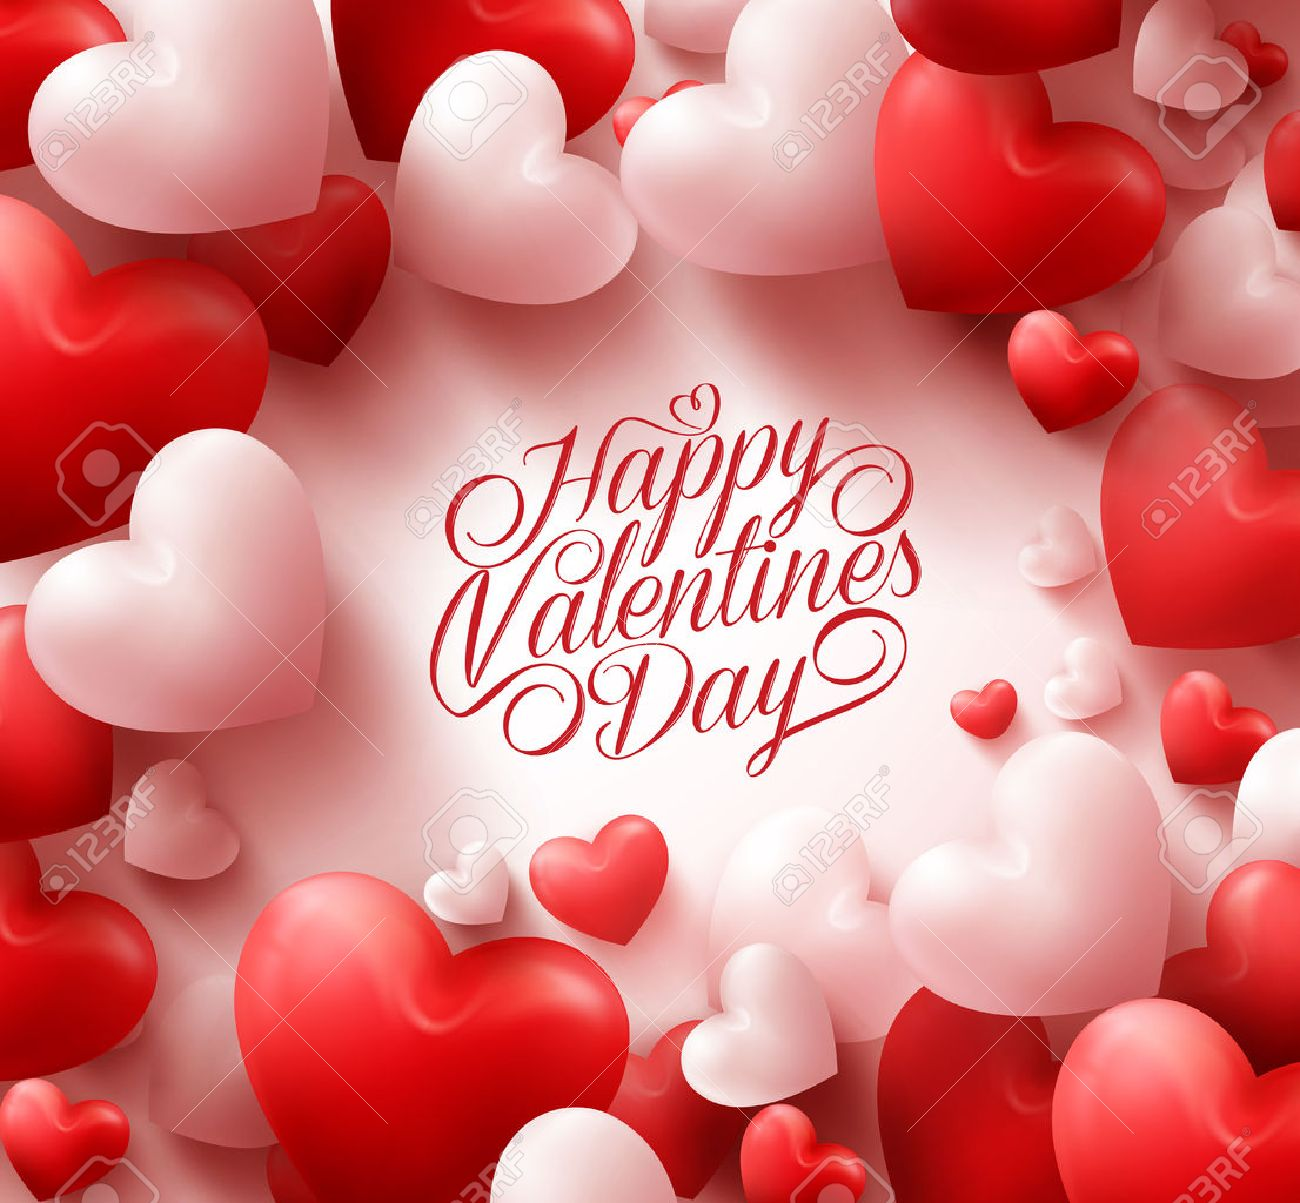 3D Realistic Red Hearts Background with Sweet Happy Valentines Day Greetings in the Middle. Illustration - 50500008